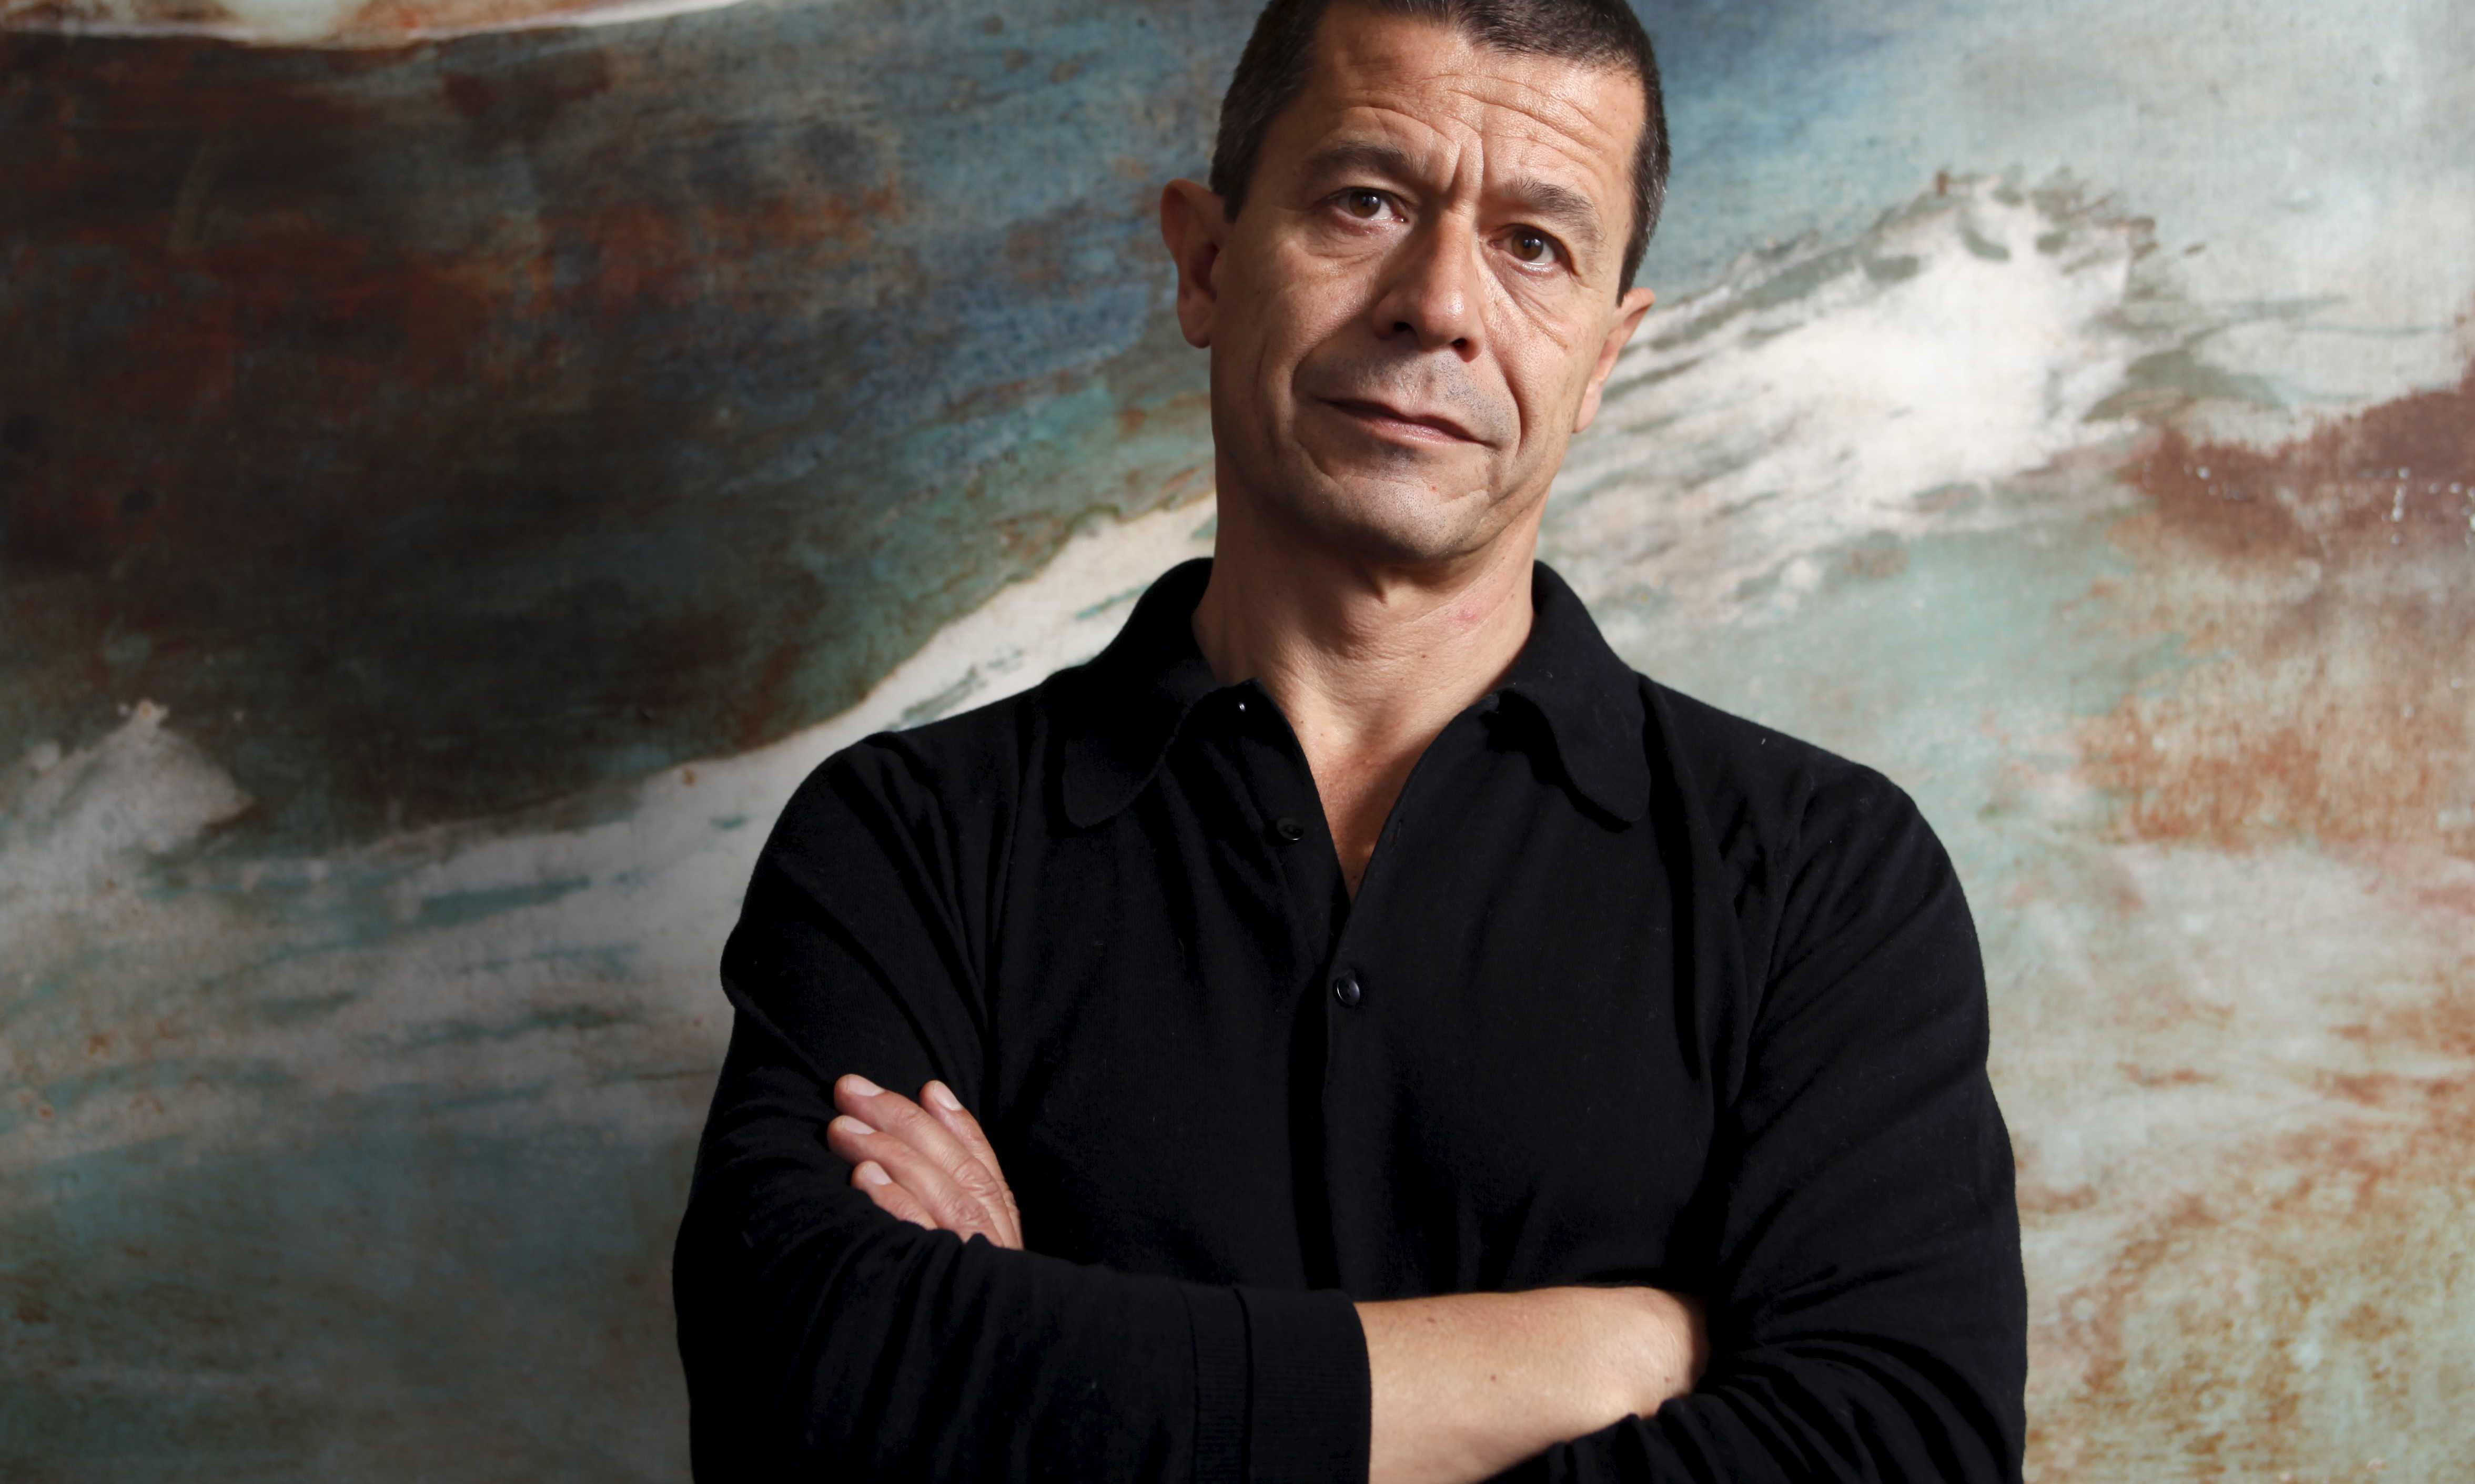 97,196 Words by Emmanuel Carrère review – essays from a French superstar writer